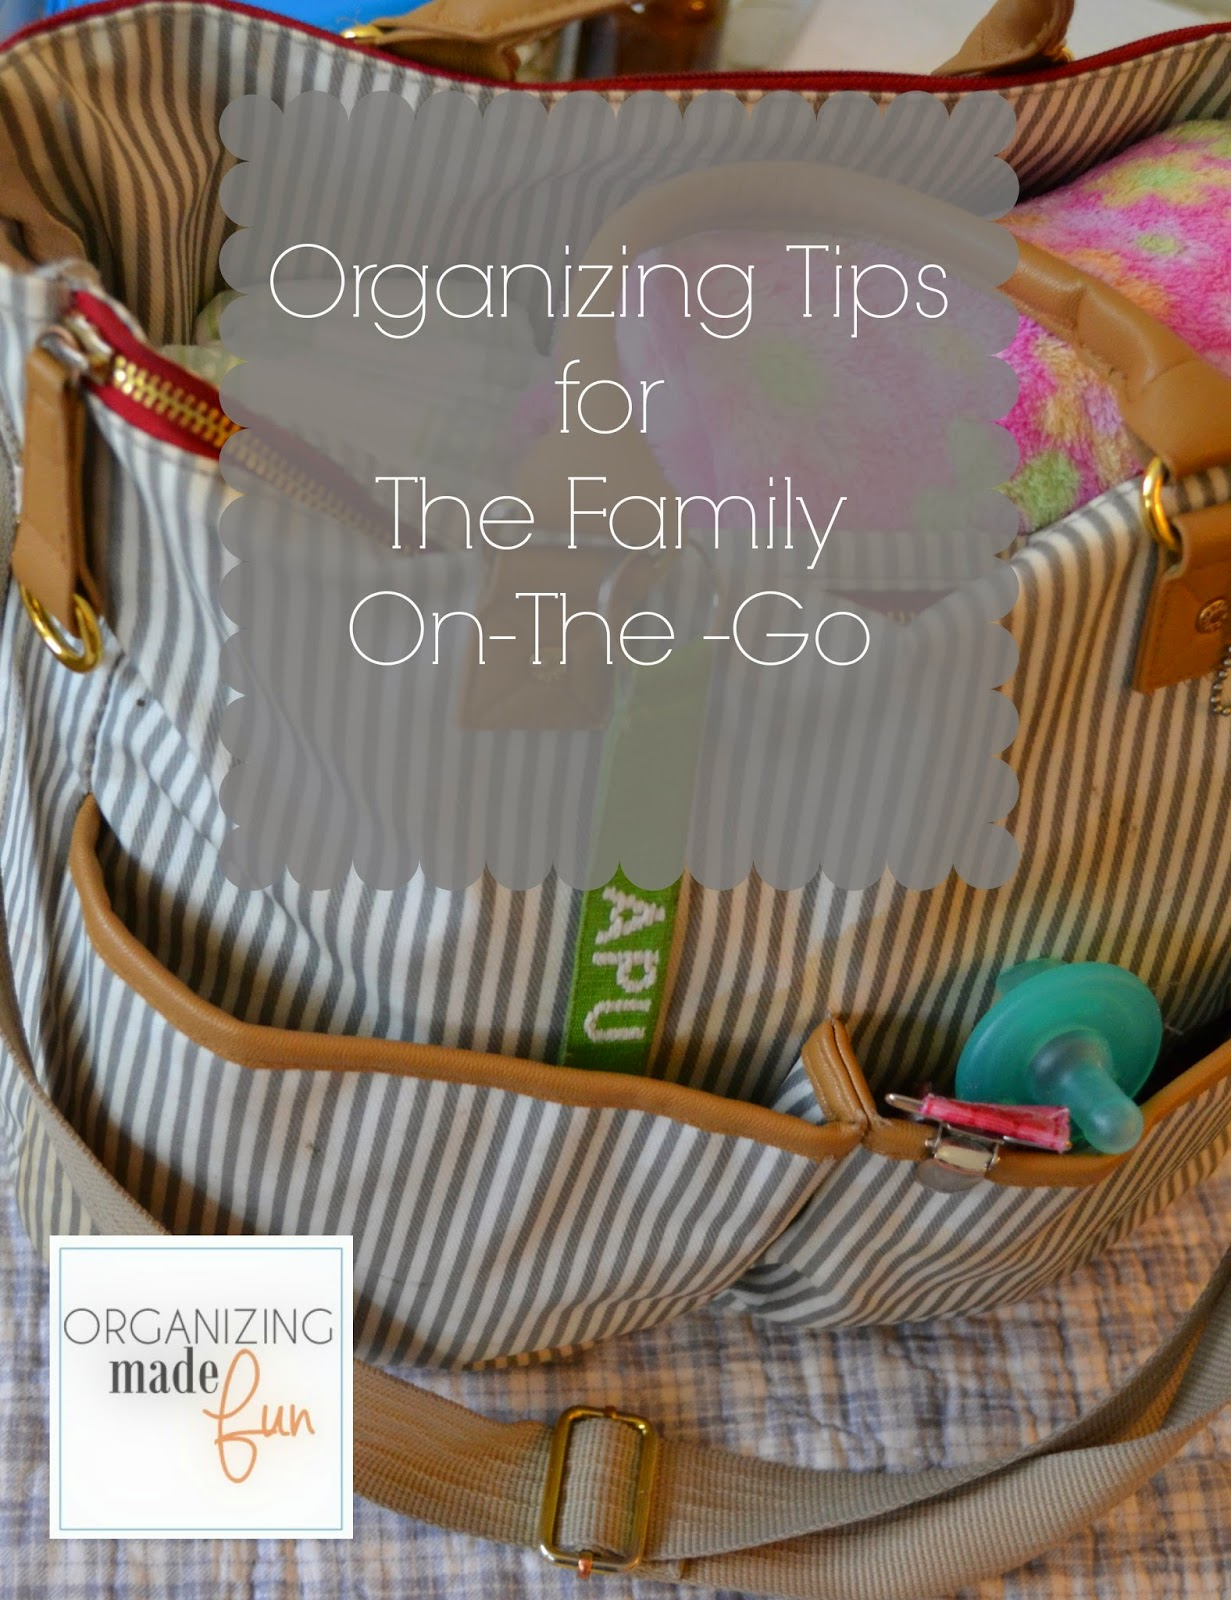 Organizing for families on the run - when you're so busy you don't know what to do :: OrganizingMadeFun.com